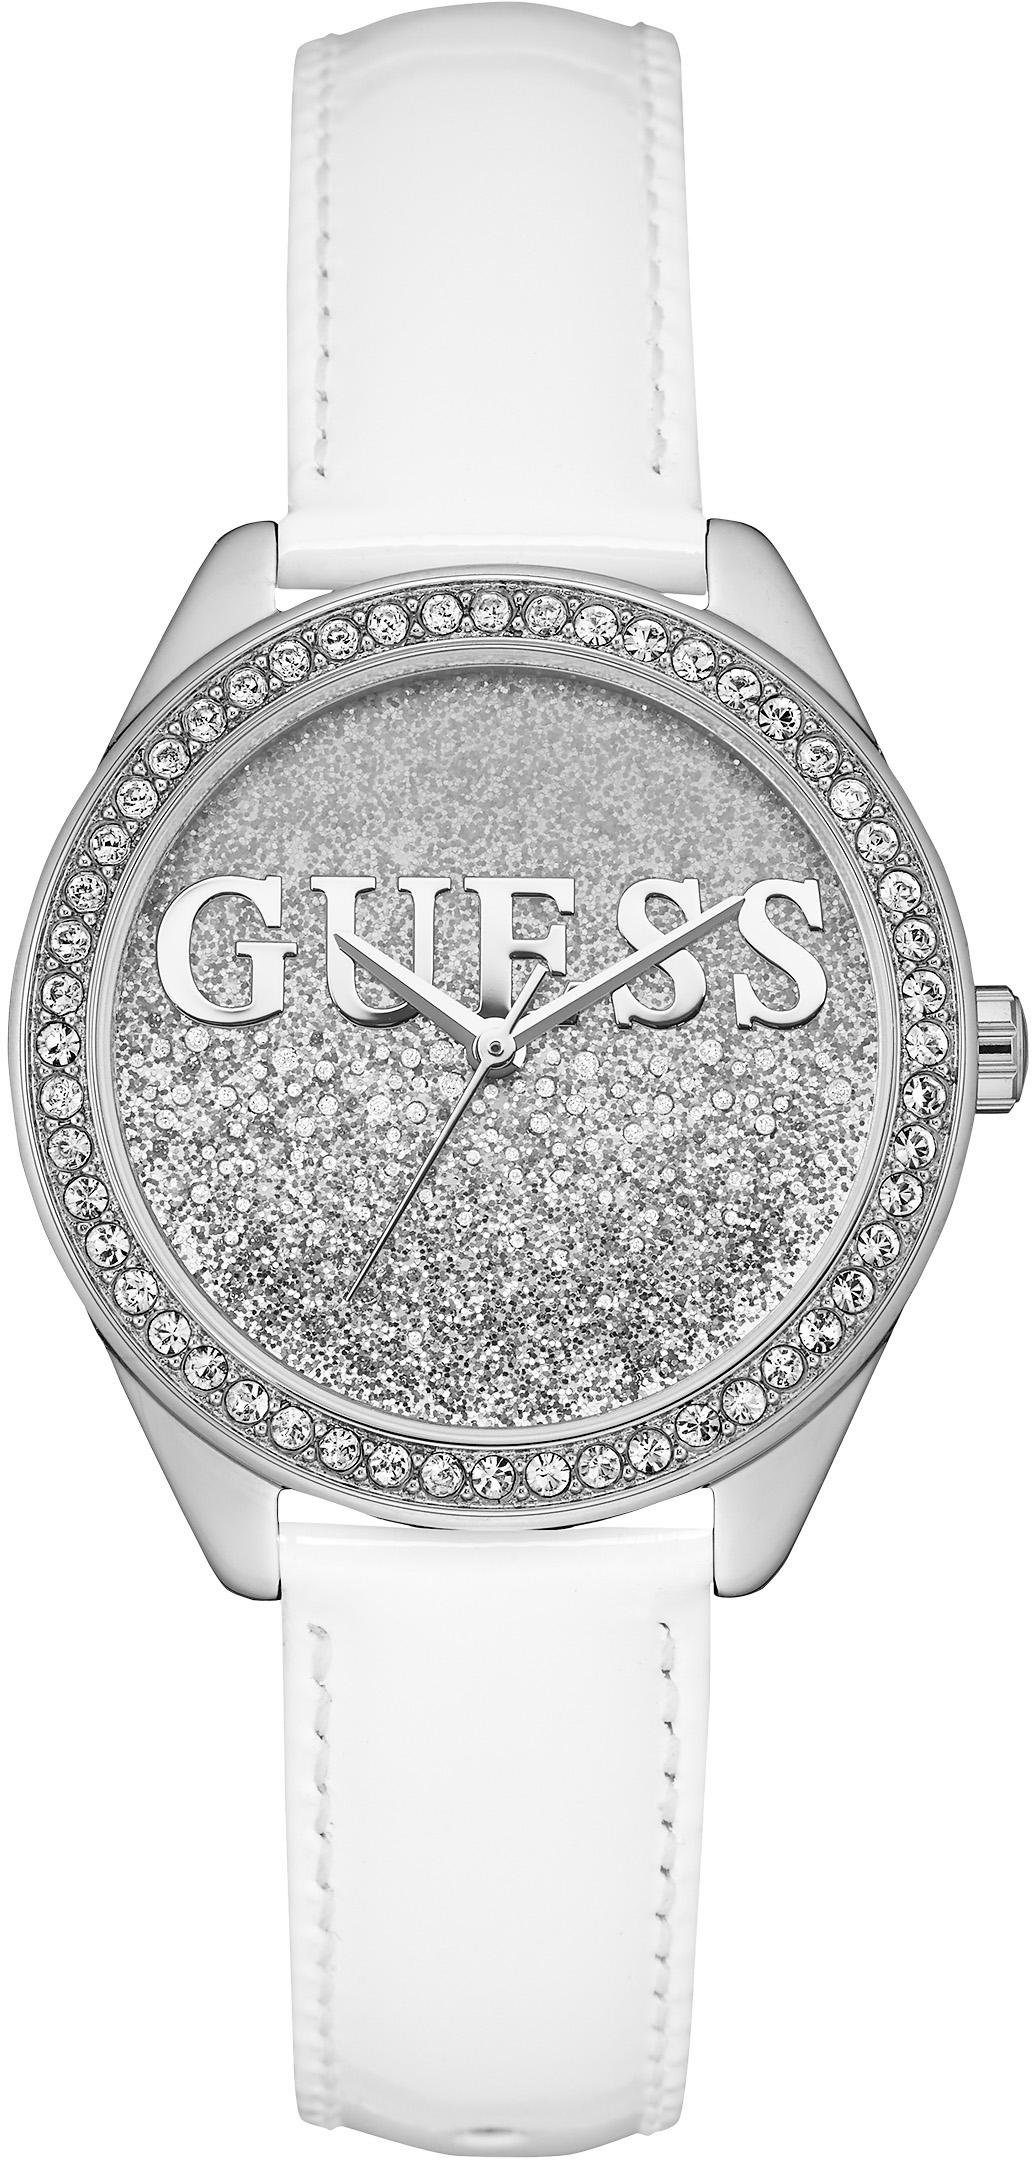 Guess Quarzuhr »GLITTER GIRL, W0823L1«